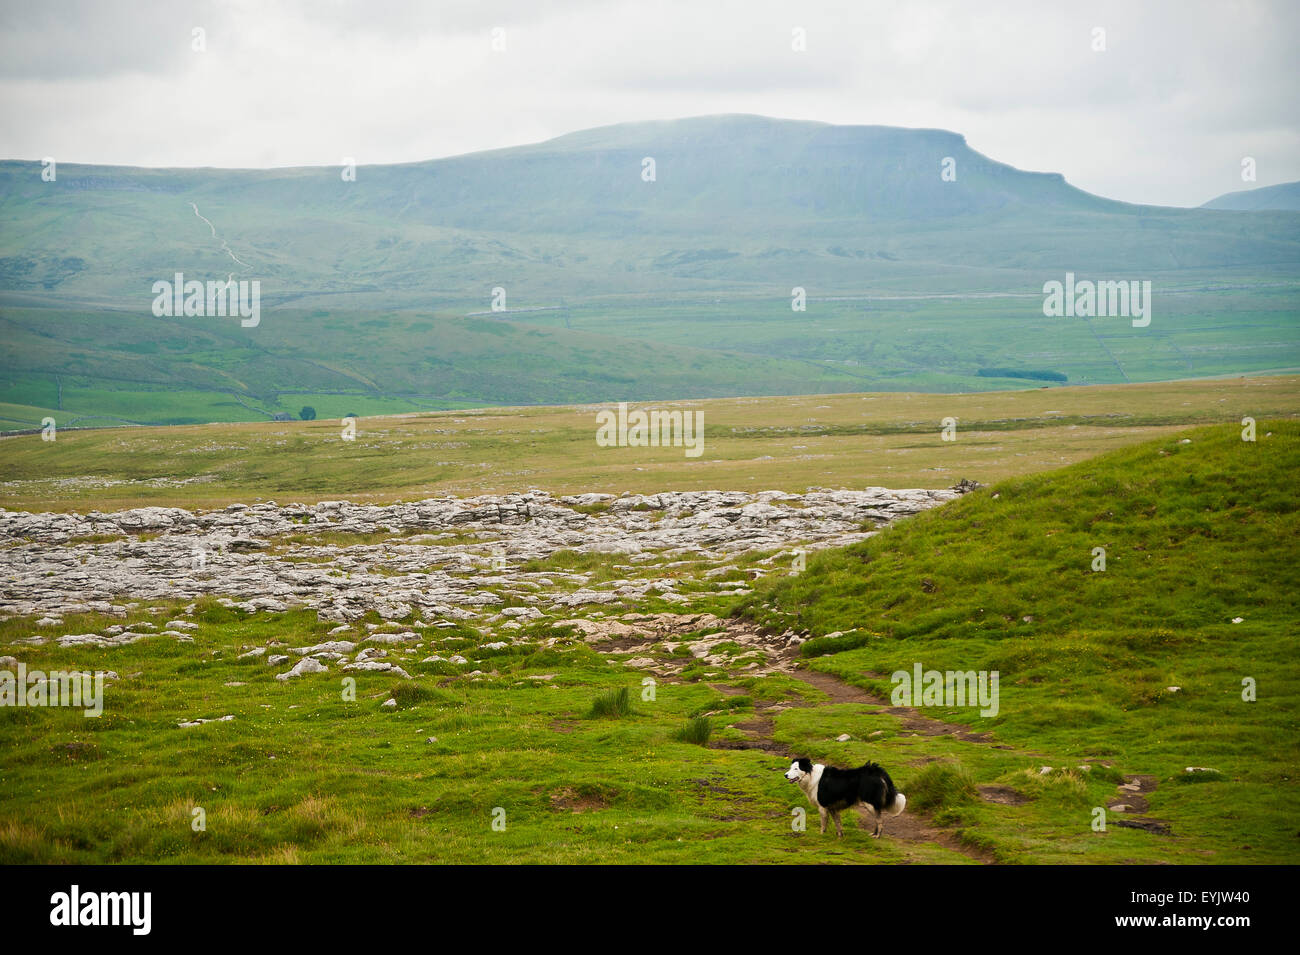 border collie dog on Limestone pavement, Yorkshire Dales, England with pen-y-gent mountain, 3 peaks challenge walk - Stock Image